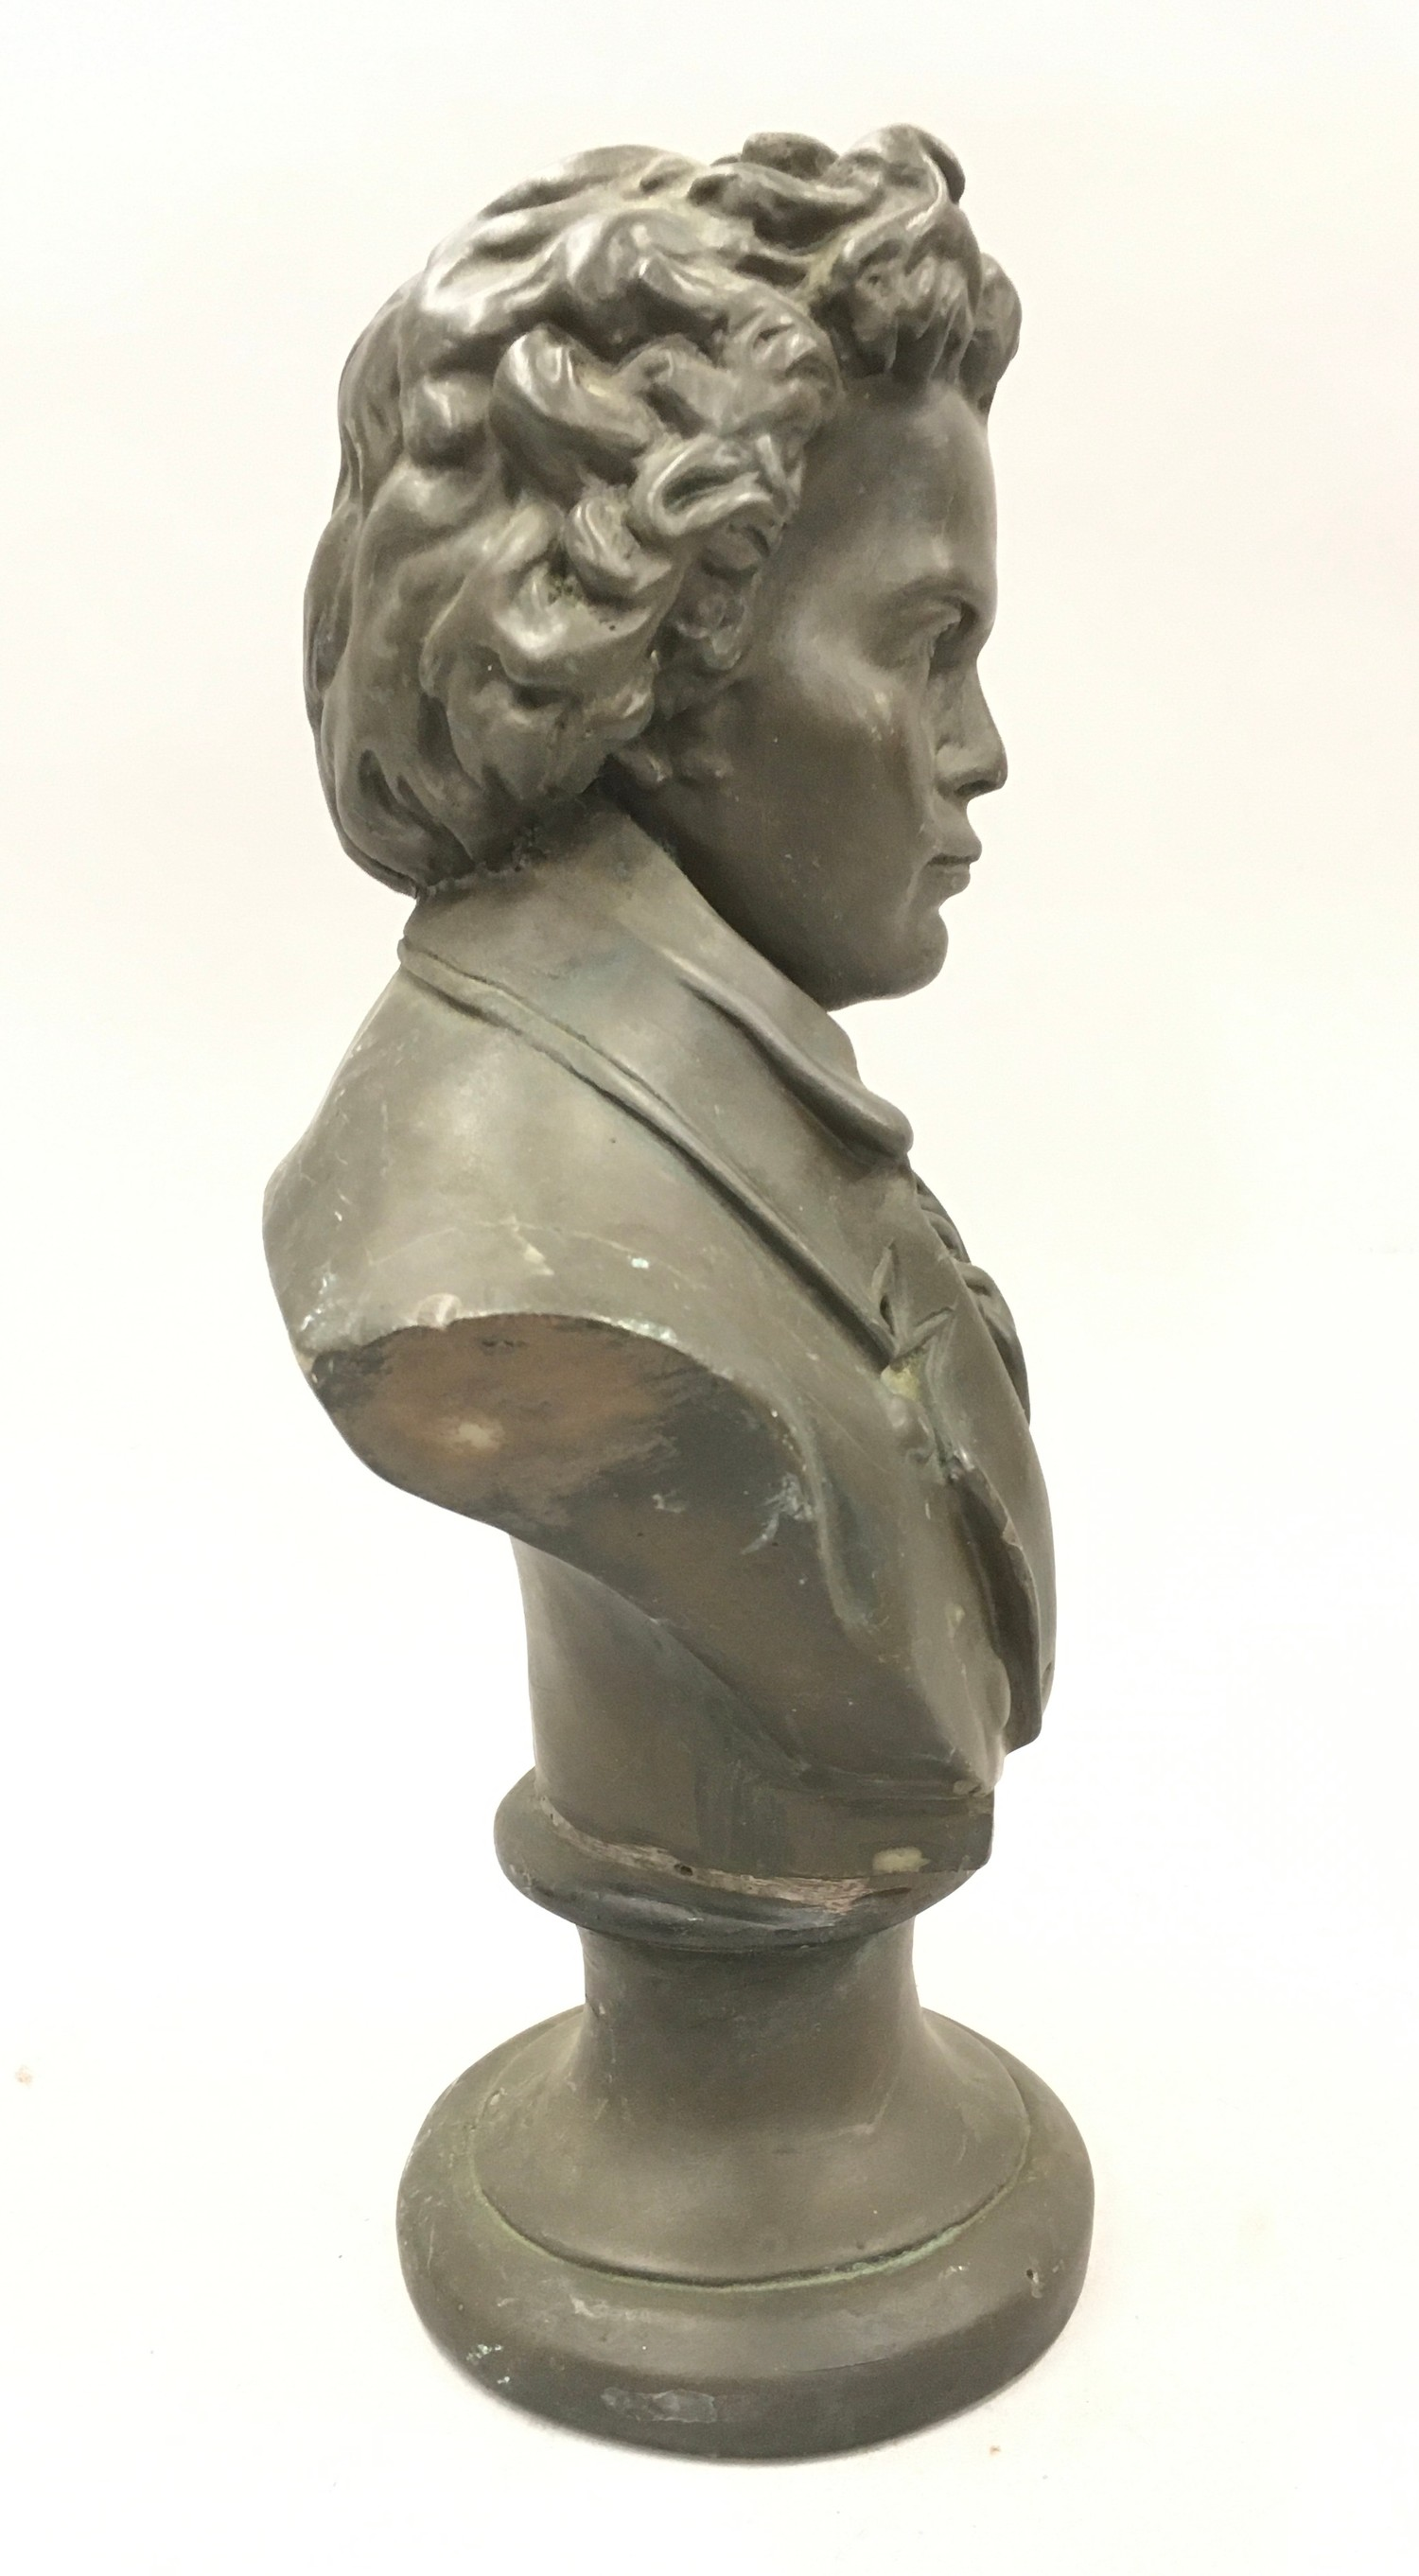 Cast metal bust of Beethoven 33cm tall - Image 2 of 4